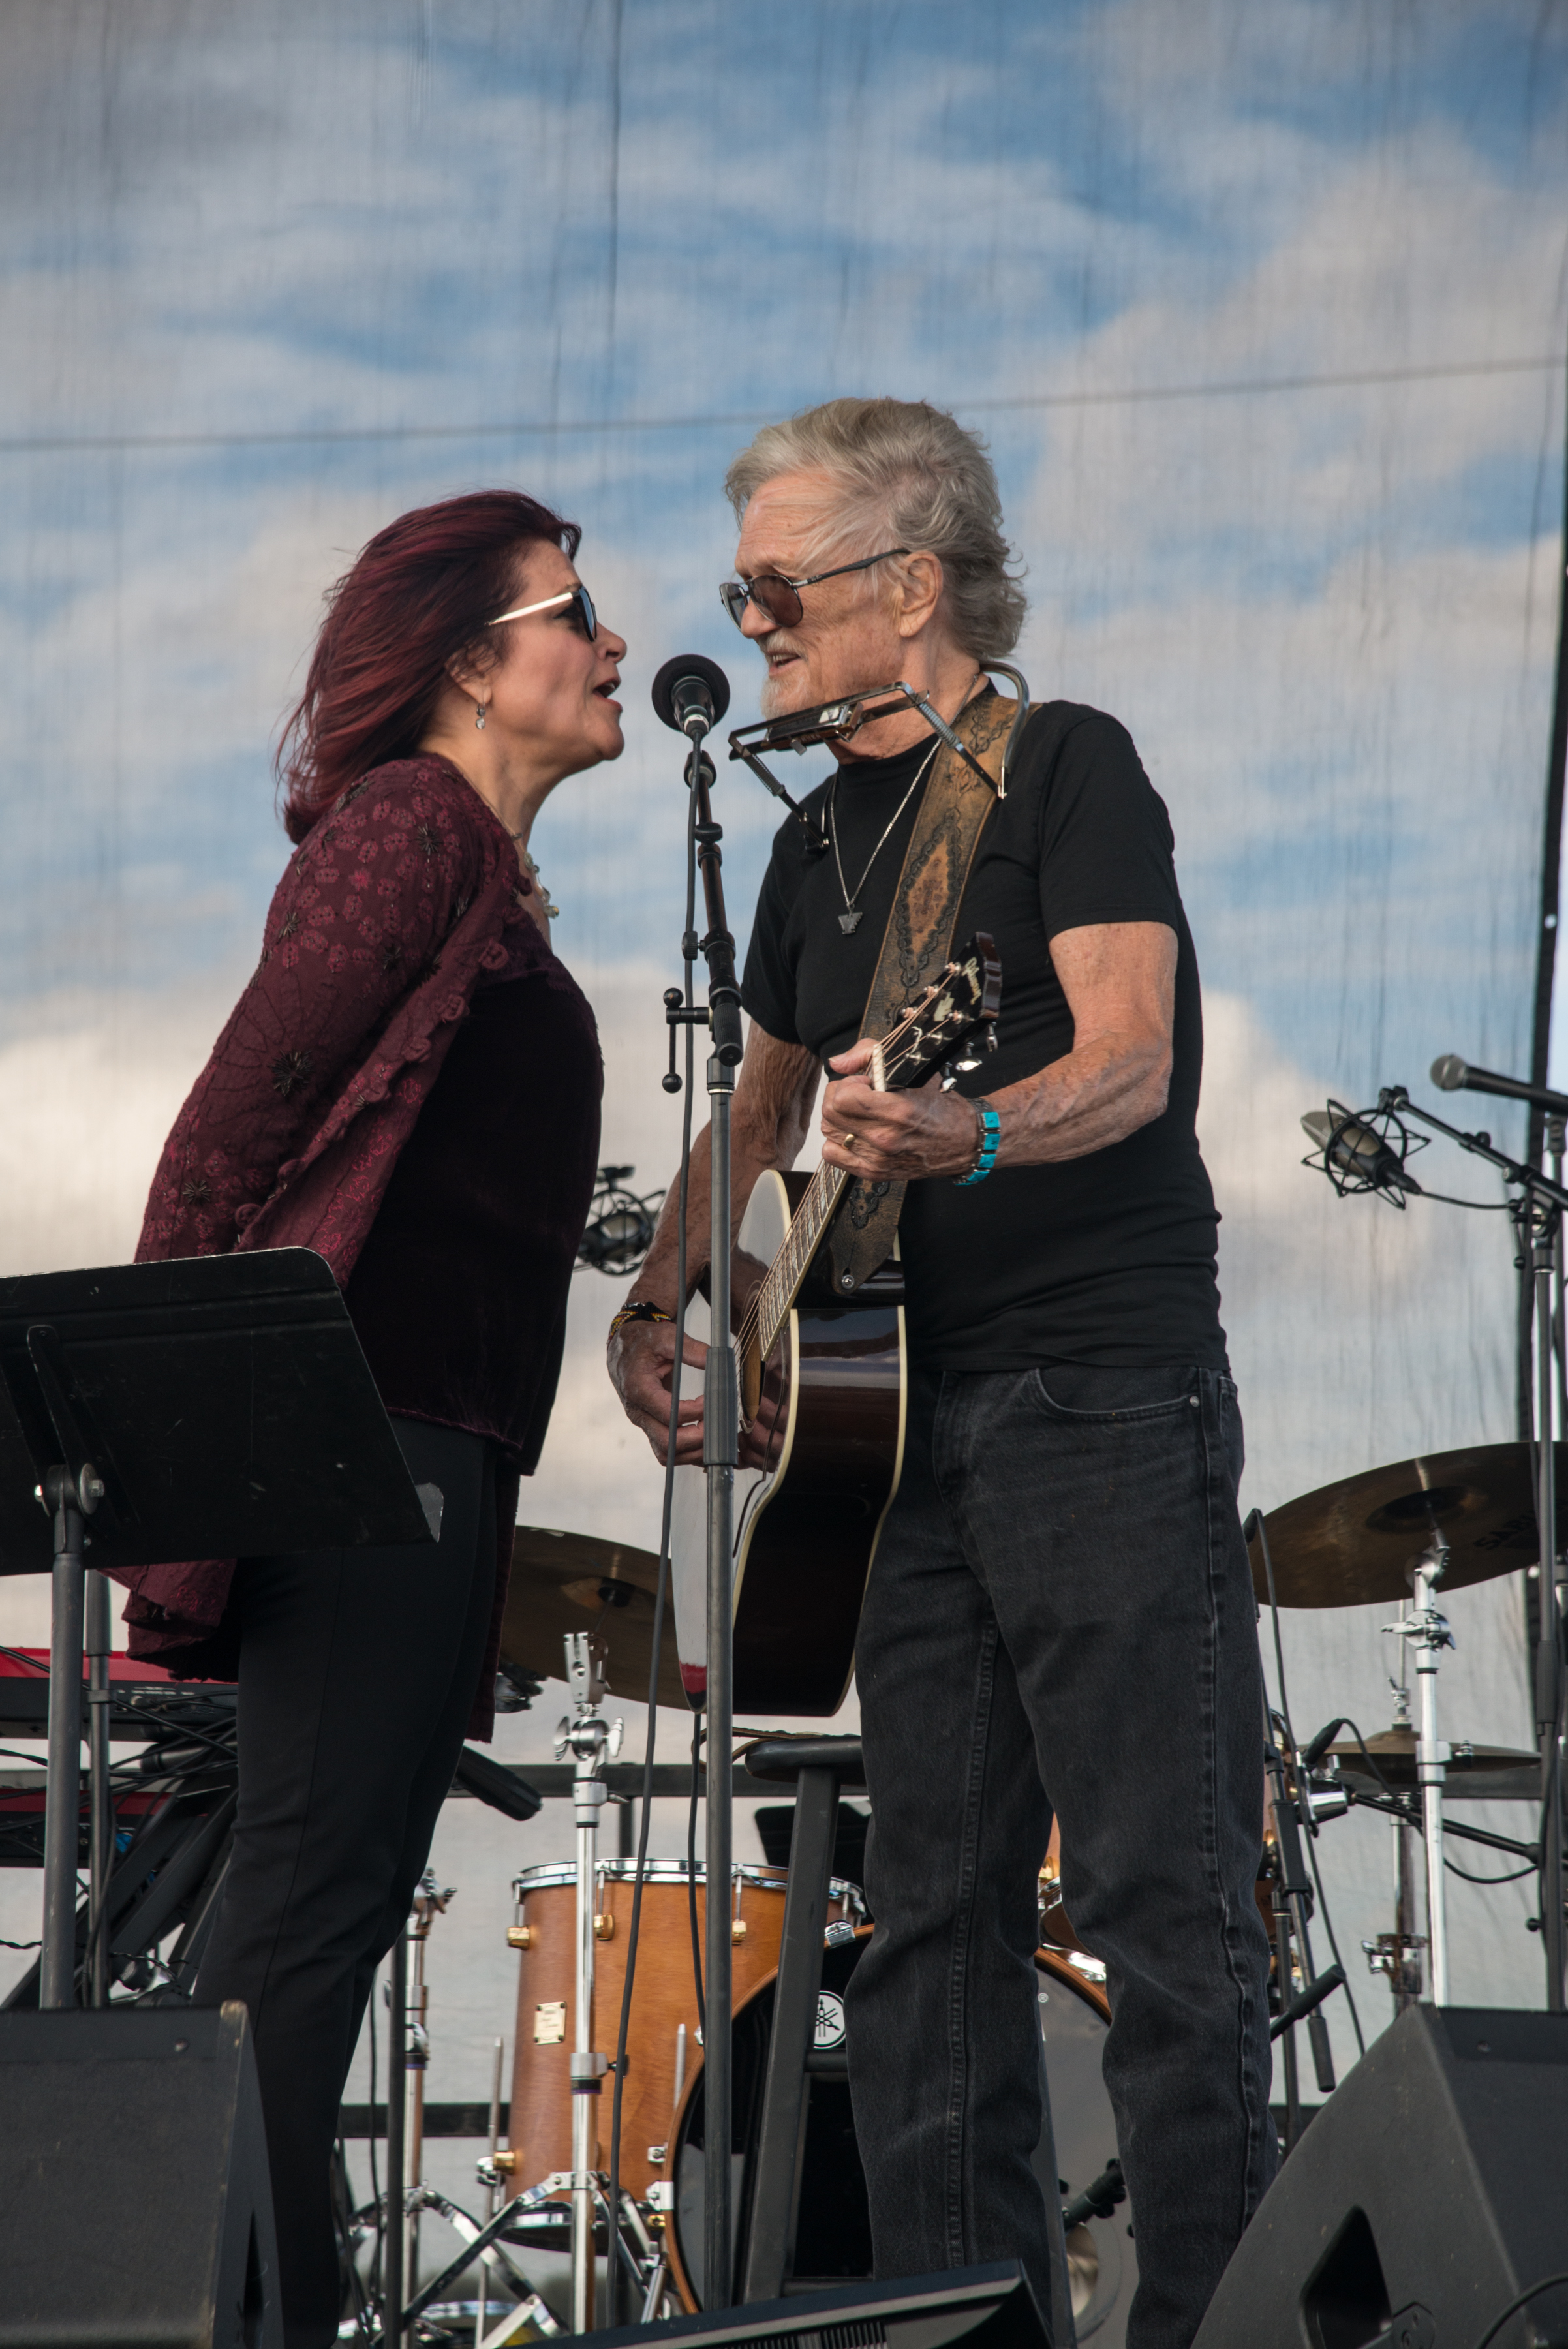 Rosanne Cash and Kris Kristofferson perform at the inaugural Johnny Cash Heritage Festival in 2017.